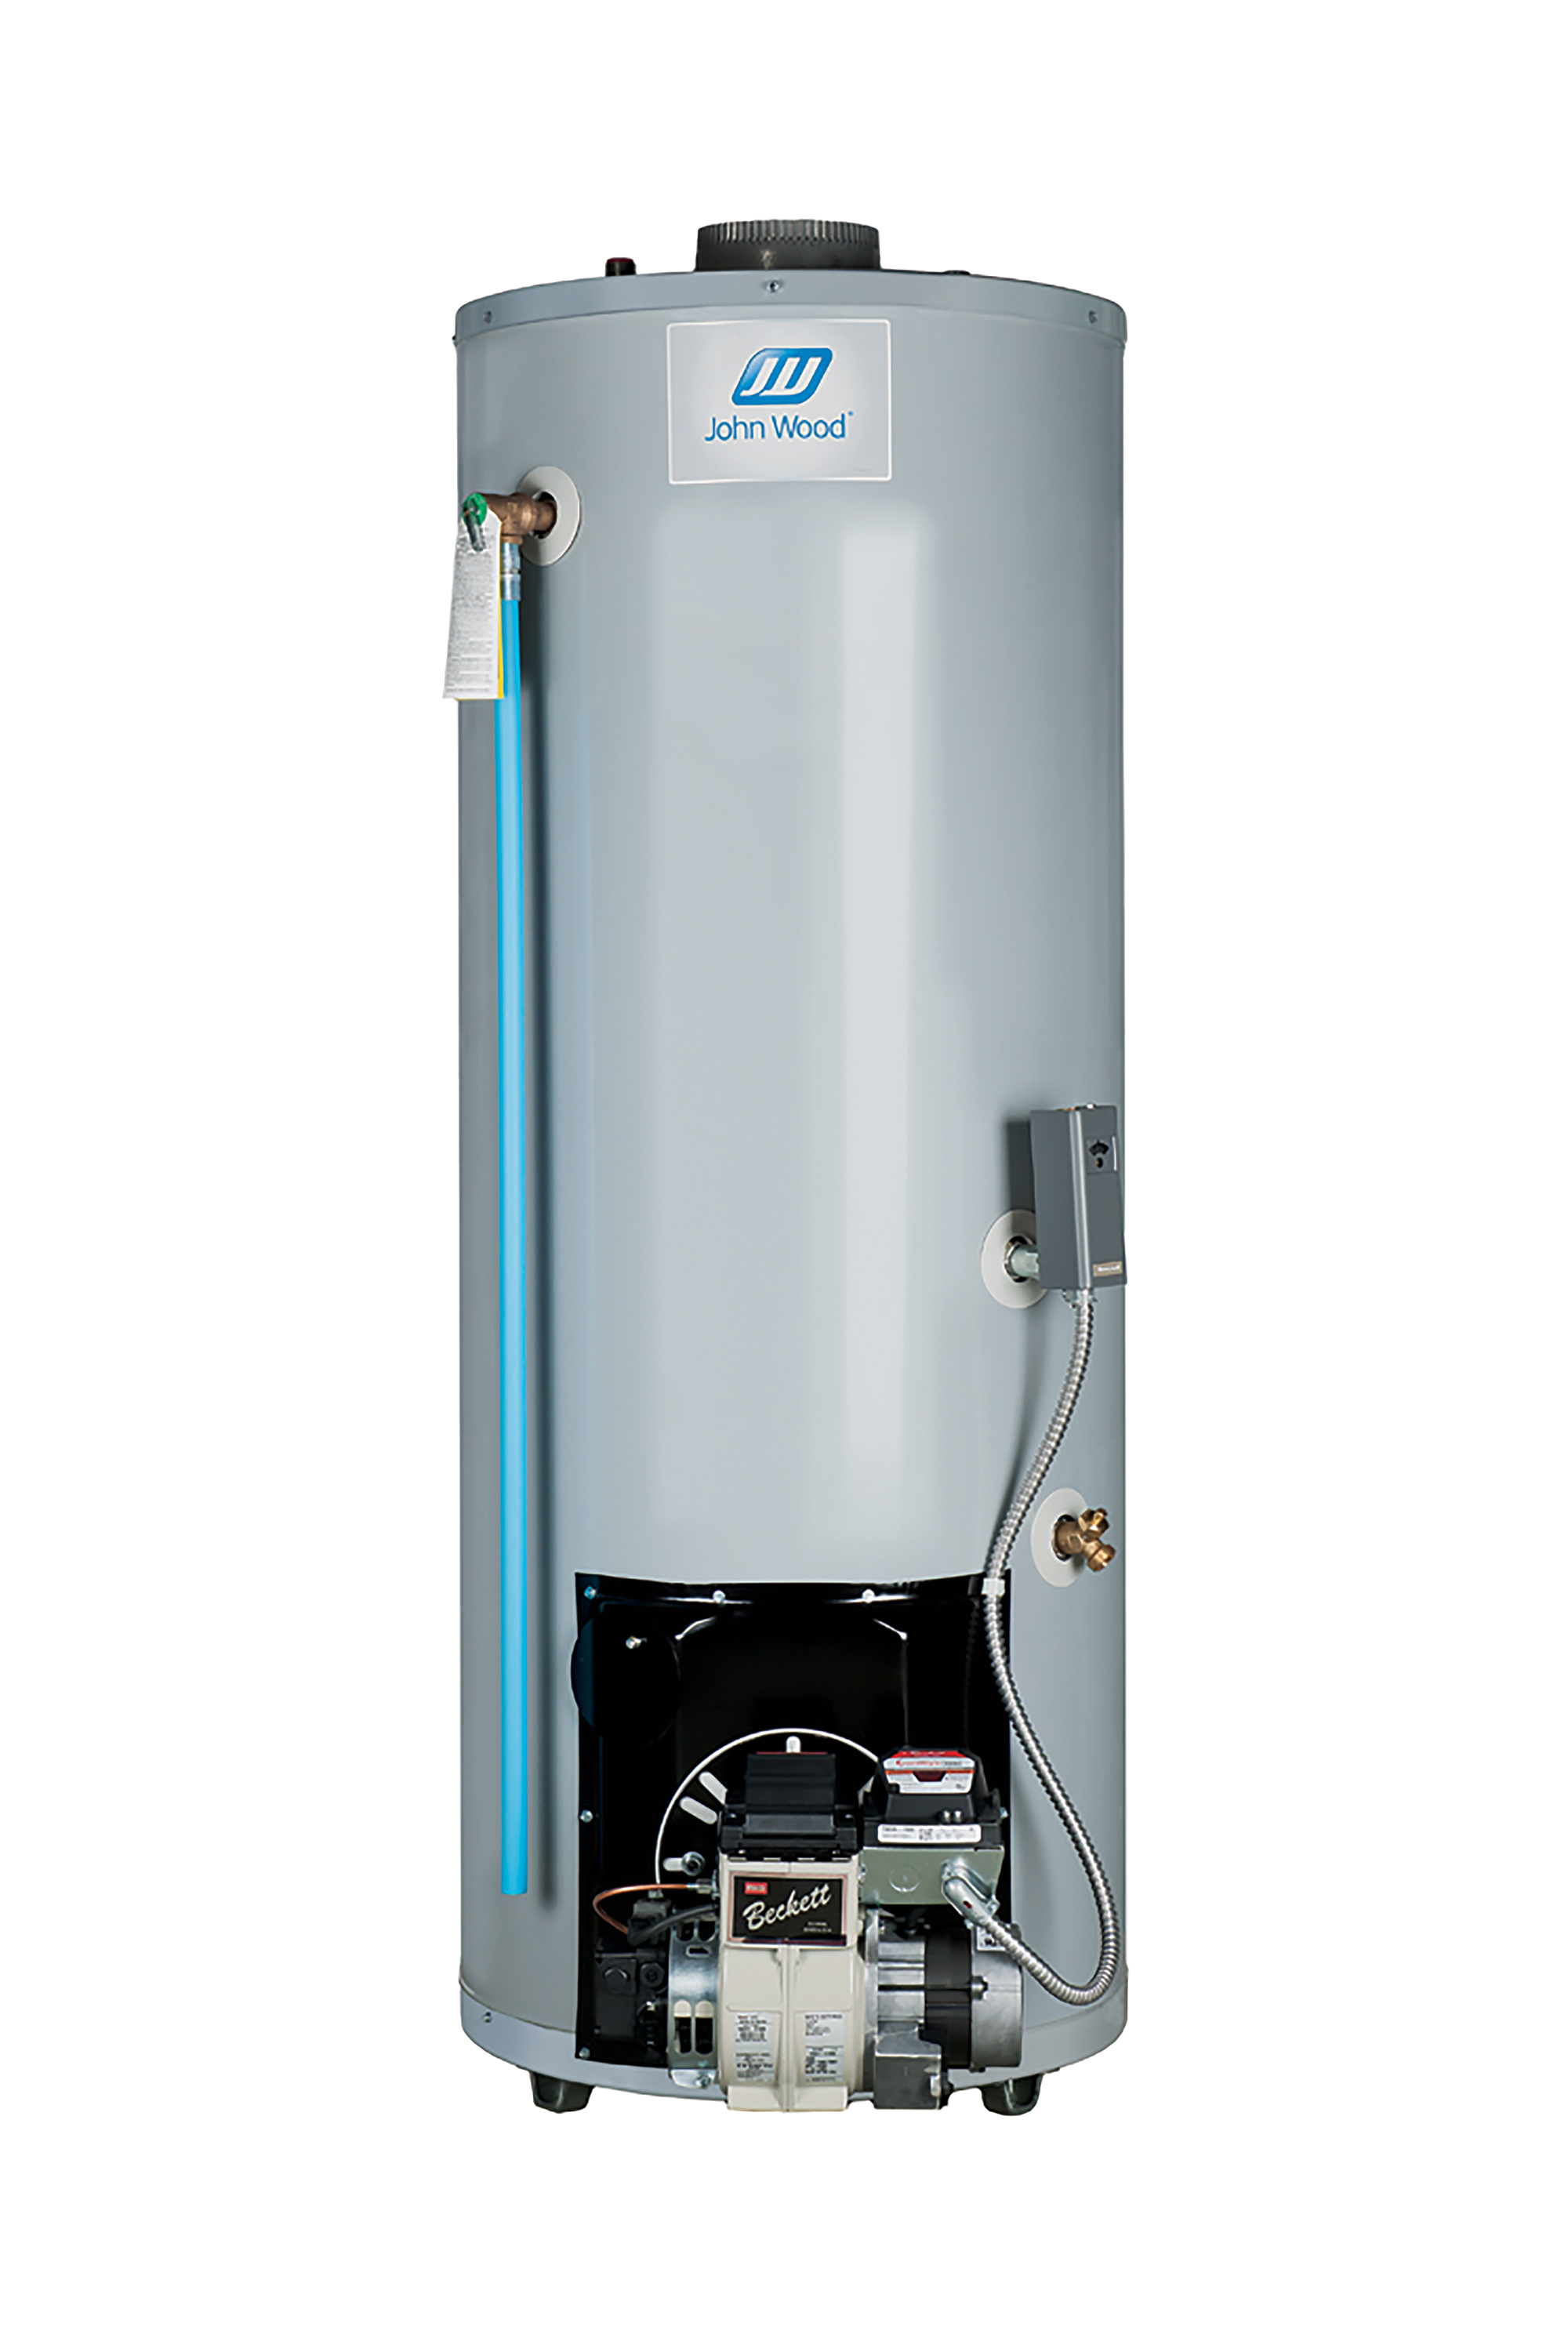 Oil Fired Water Heater John Wood